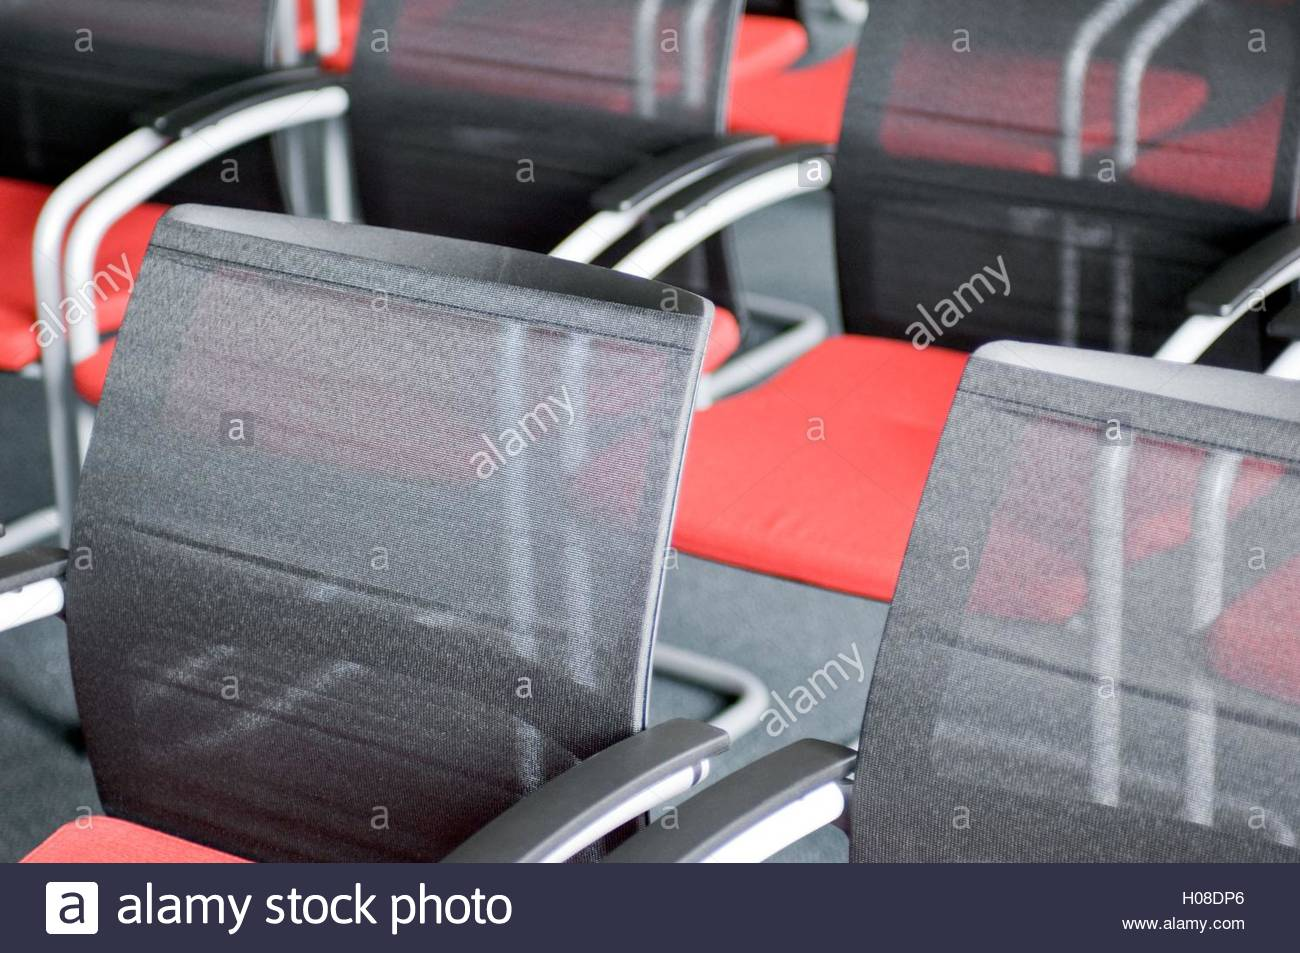 Design Bã¼Romã¶bel Gebraucht | Ba Roma Bel Stock Photos Ba Roma Bel Stock Images Alamy